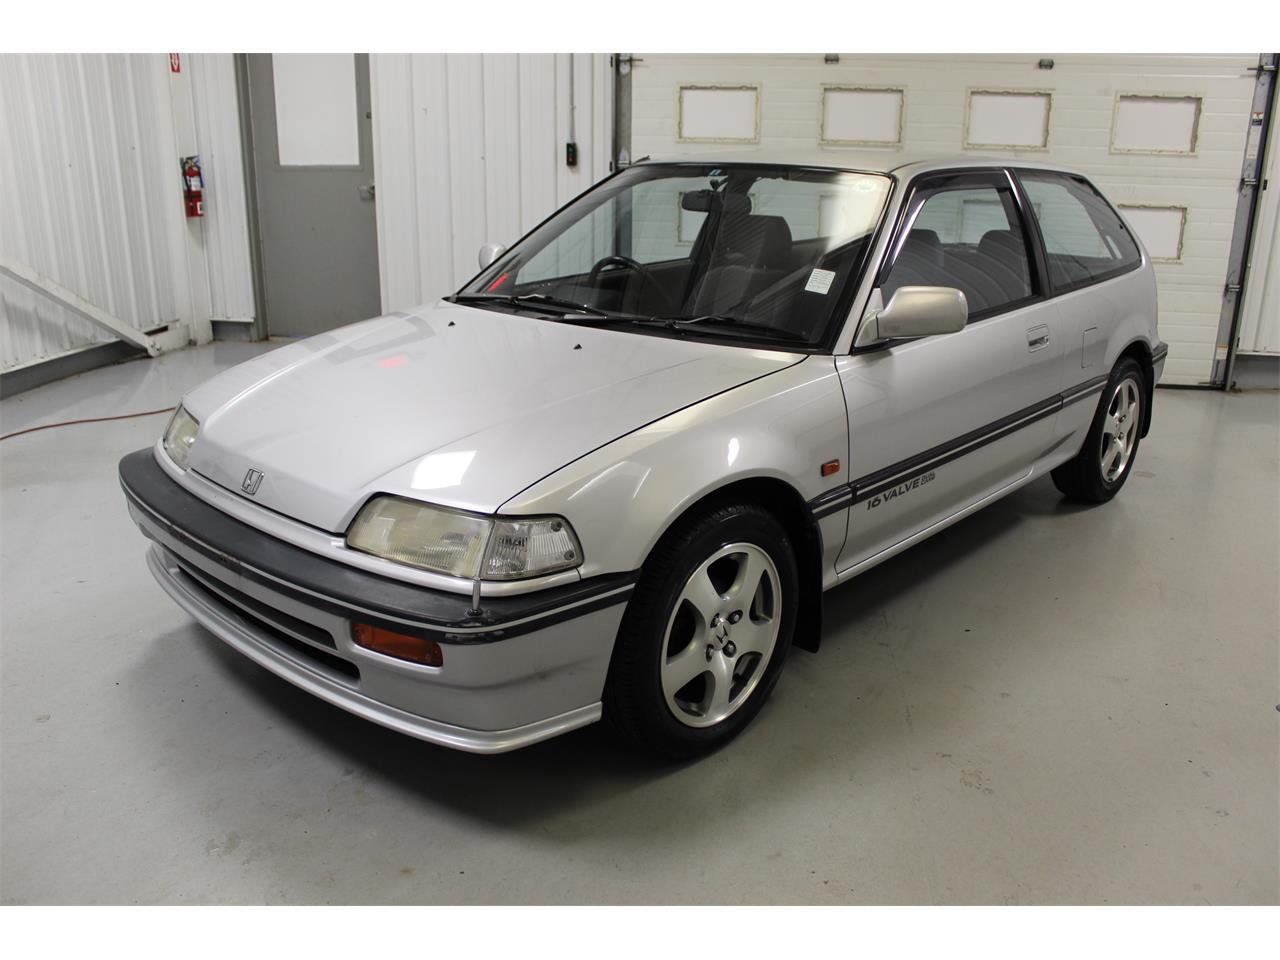 Large Picture of 1989 Civic - $11,900.00 Offered by Duncan Imports & Classic Cars - P9OJ